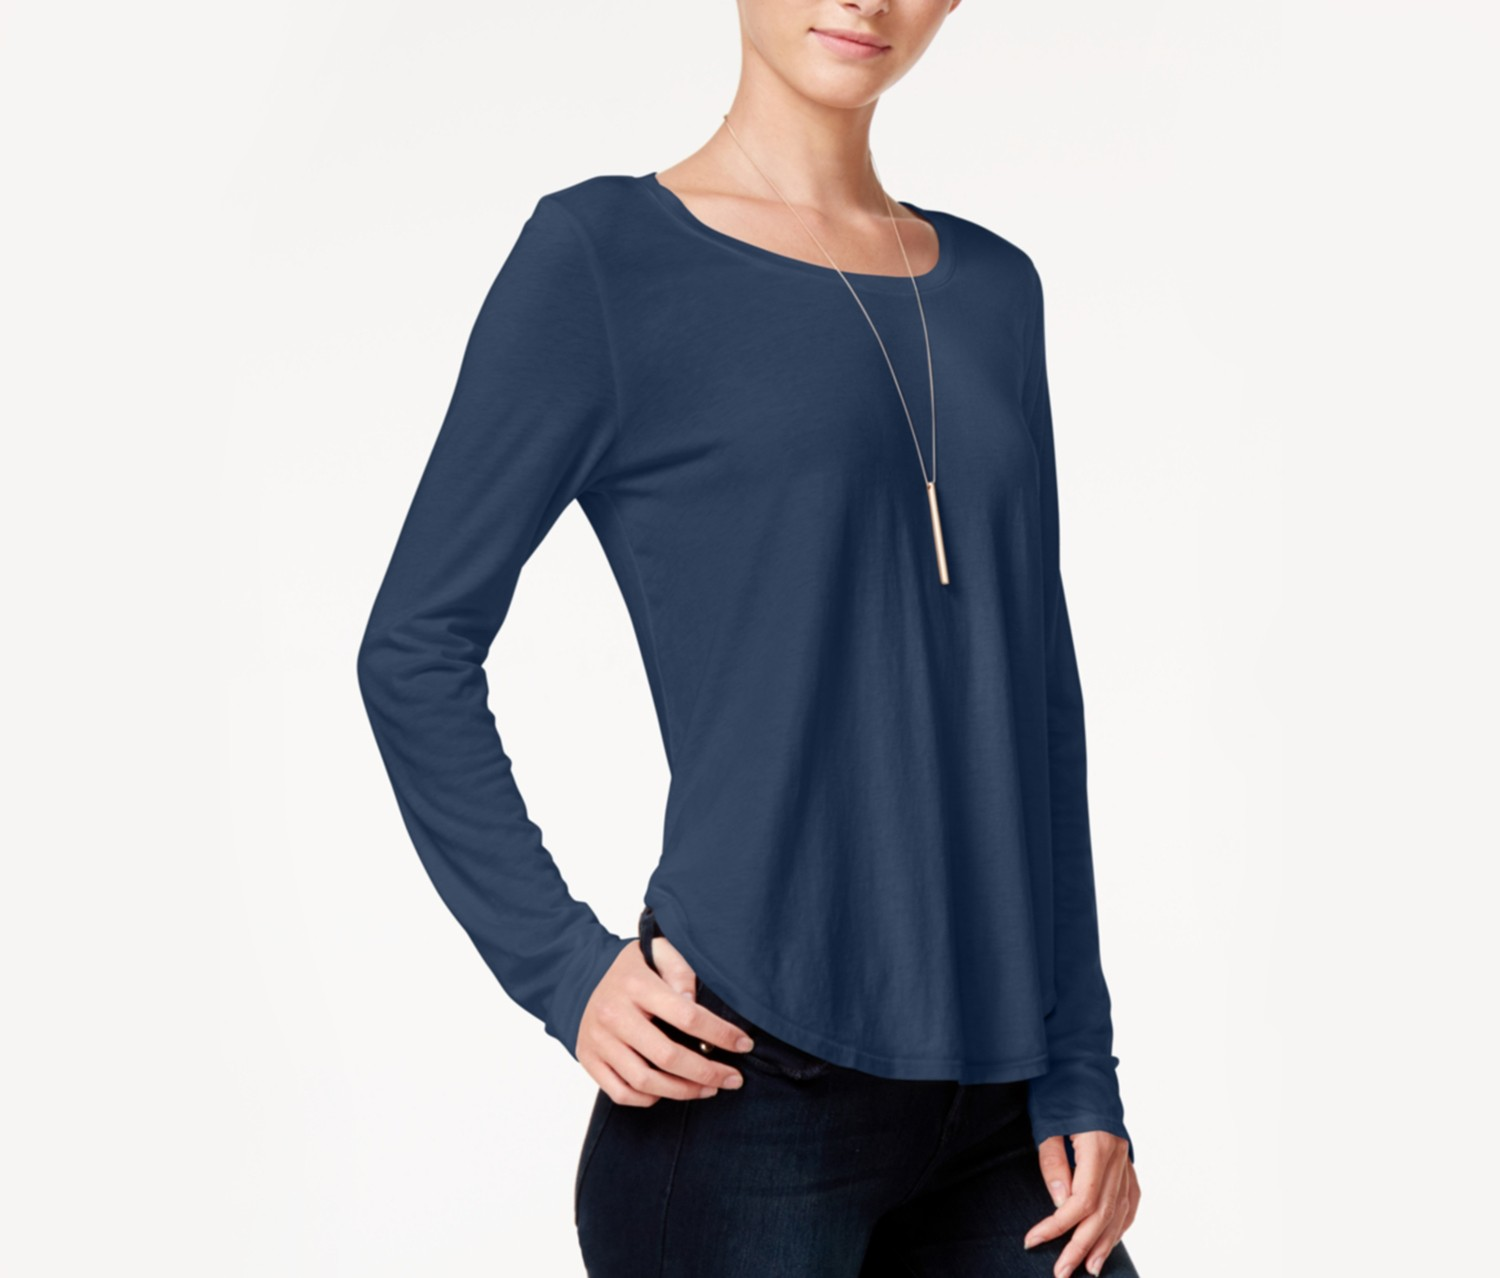 Chelsea Sky Keyhole-Back High-Low Top, Navy